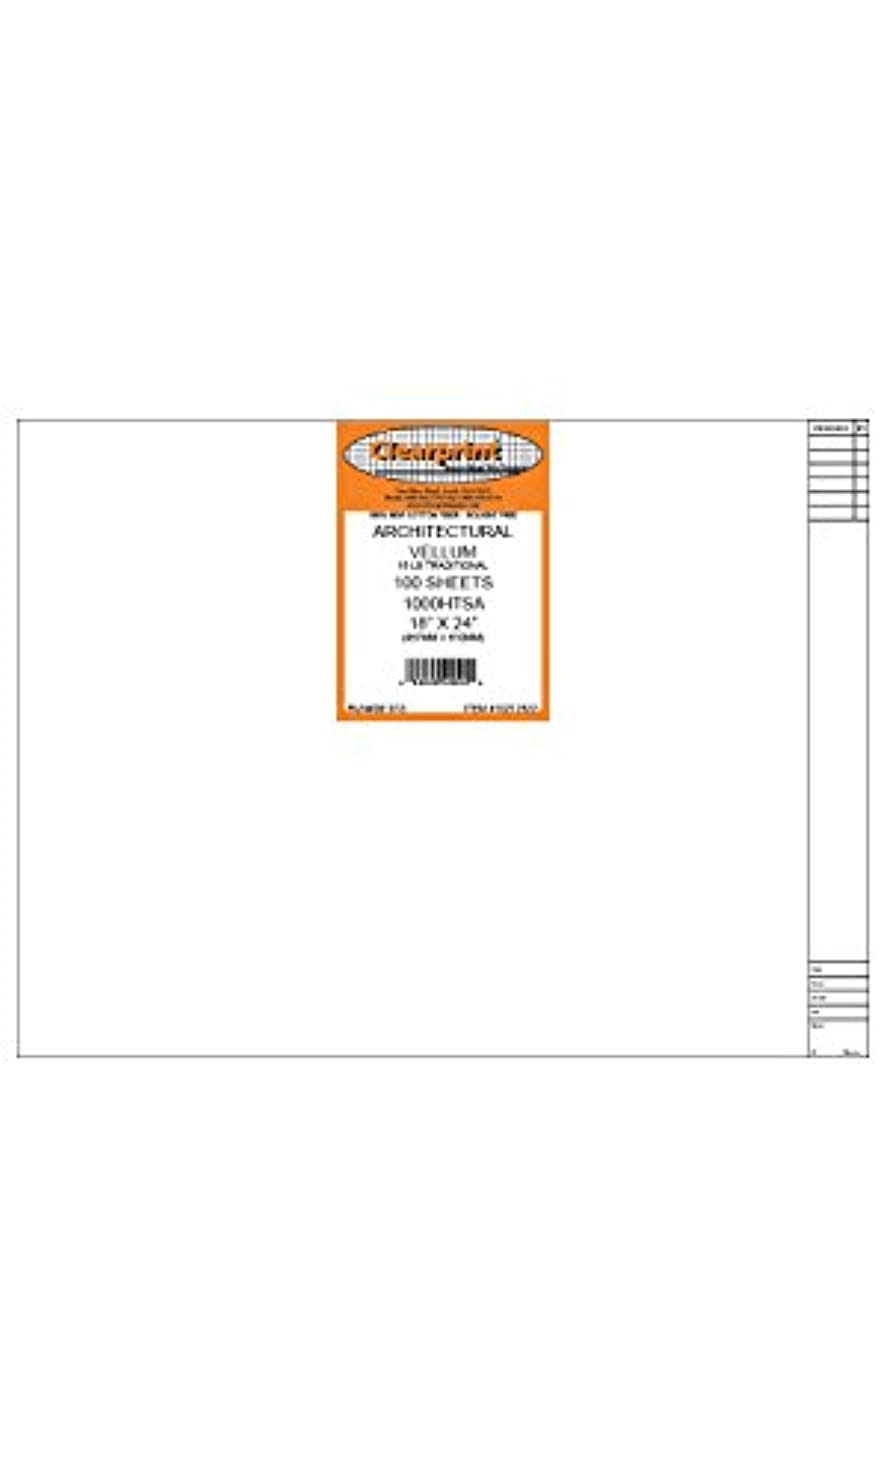 Clearprint 1000H Design Vellum Sheets with Architect Title Block, 16 Lb., 100% Cotton, 18 x 24 Inches, 100 Sheets Per Pack, 1 Each (10212522)